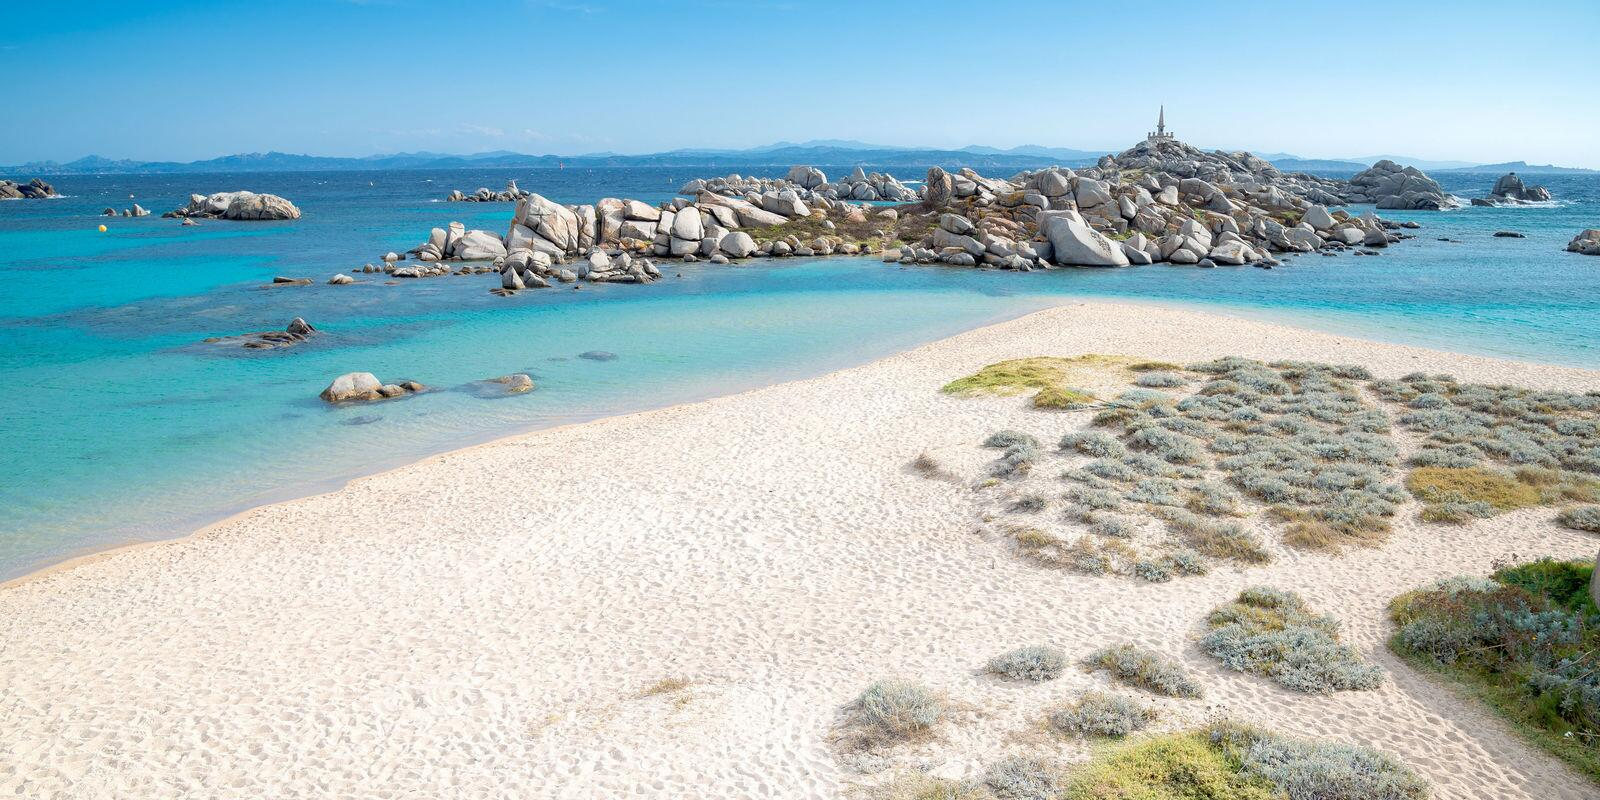 Between the north of Sardinia up to the south of Corsica through the Maddalena archipelago